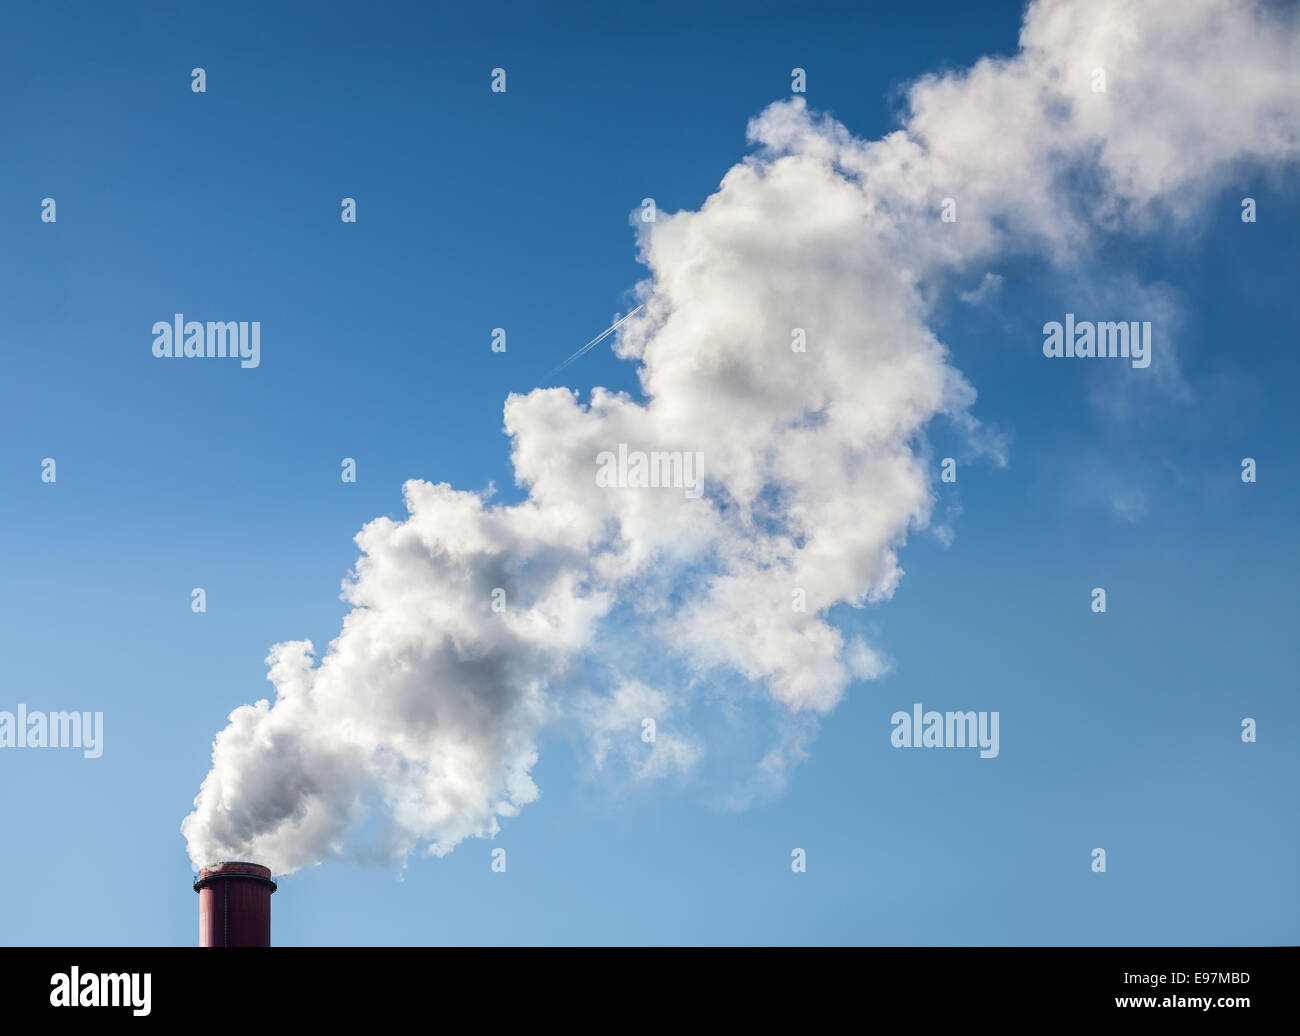 Smoke from industrial smokestack on a clear blue sky. - Stock Image